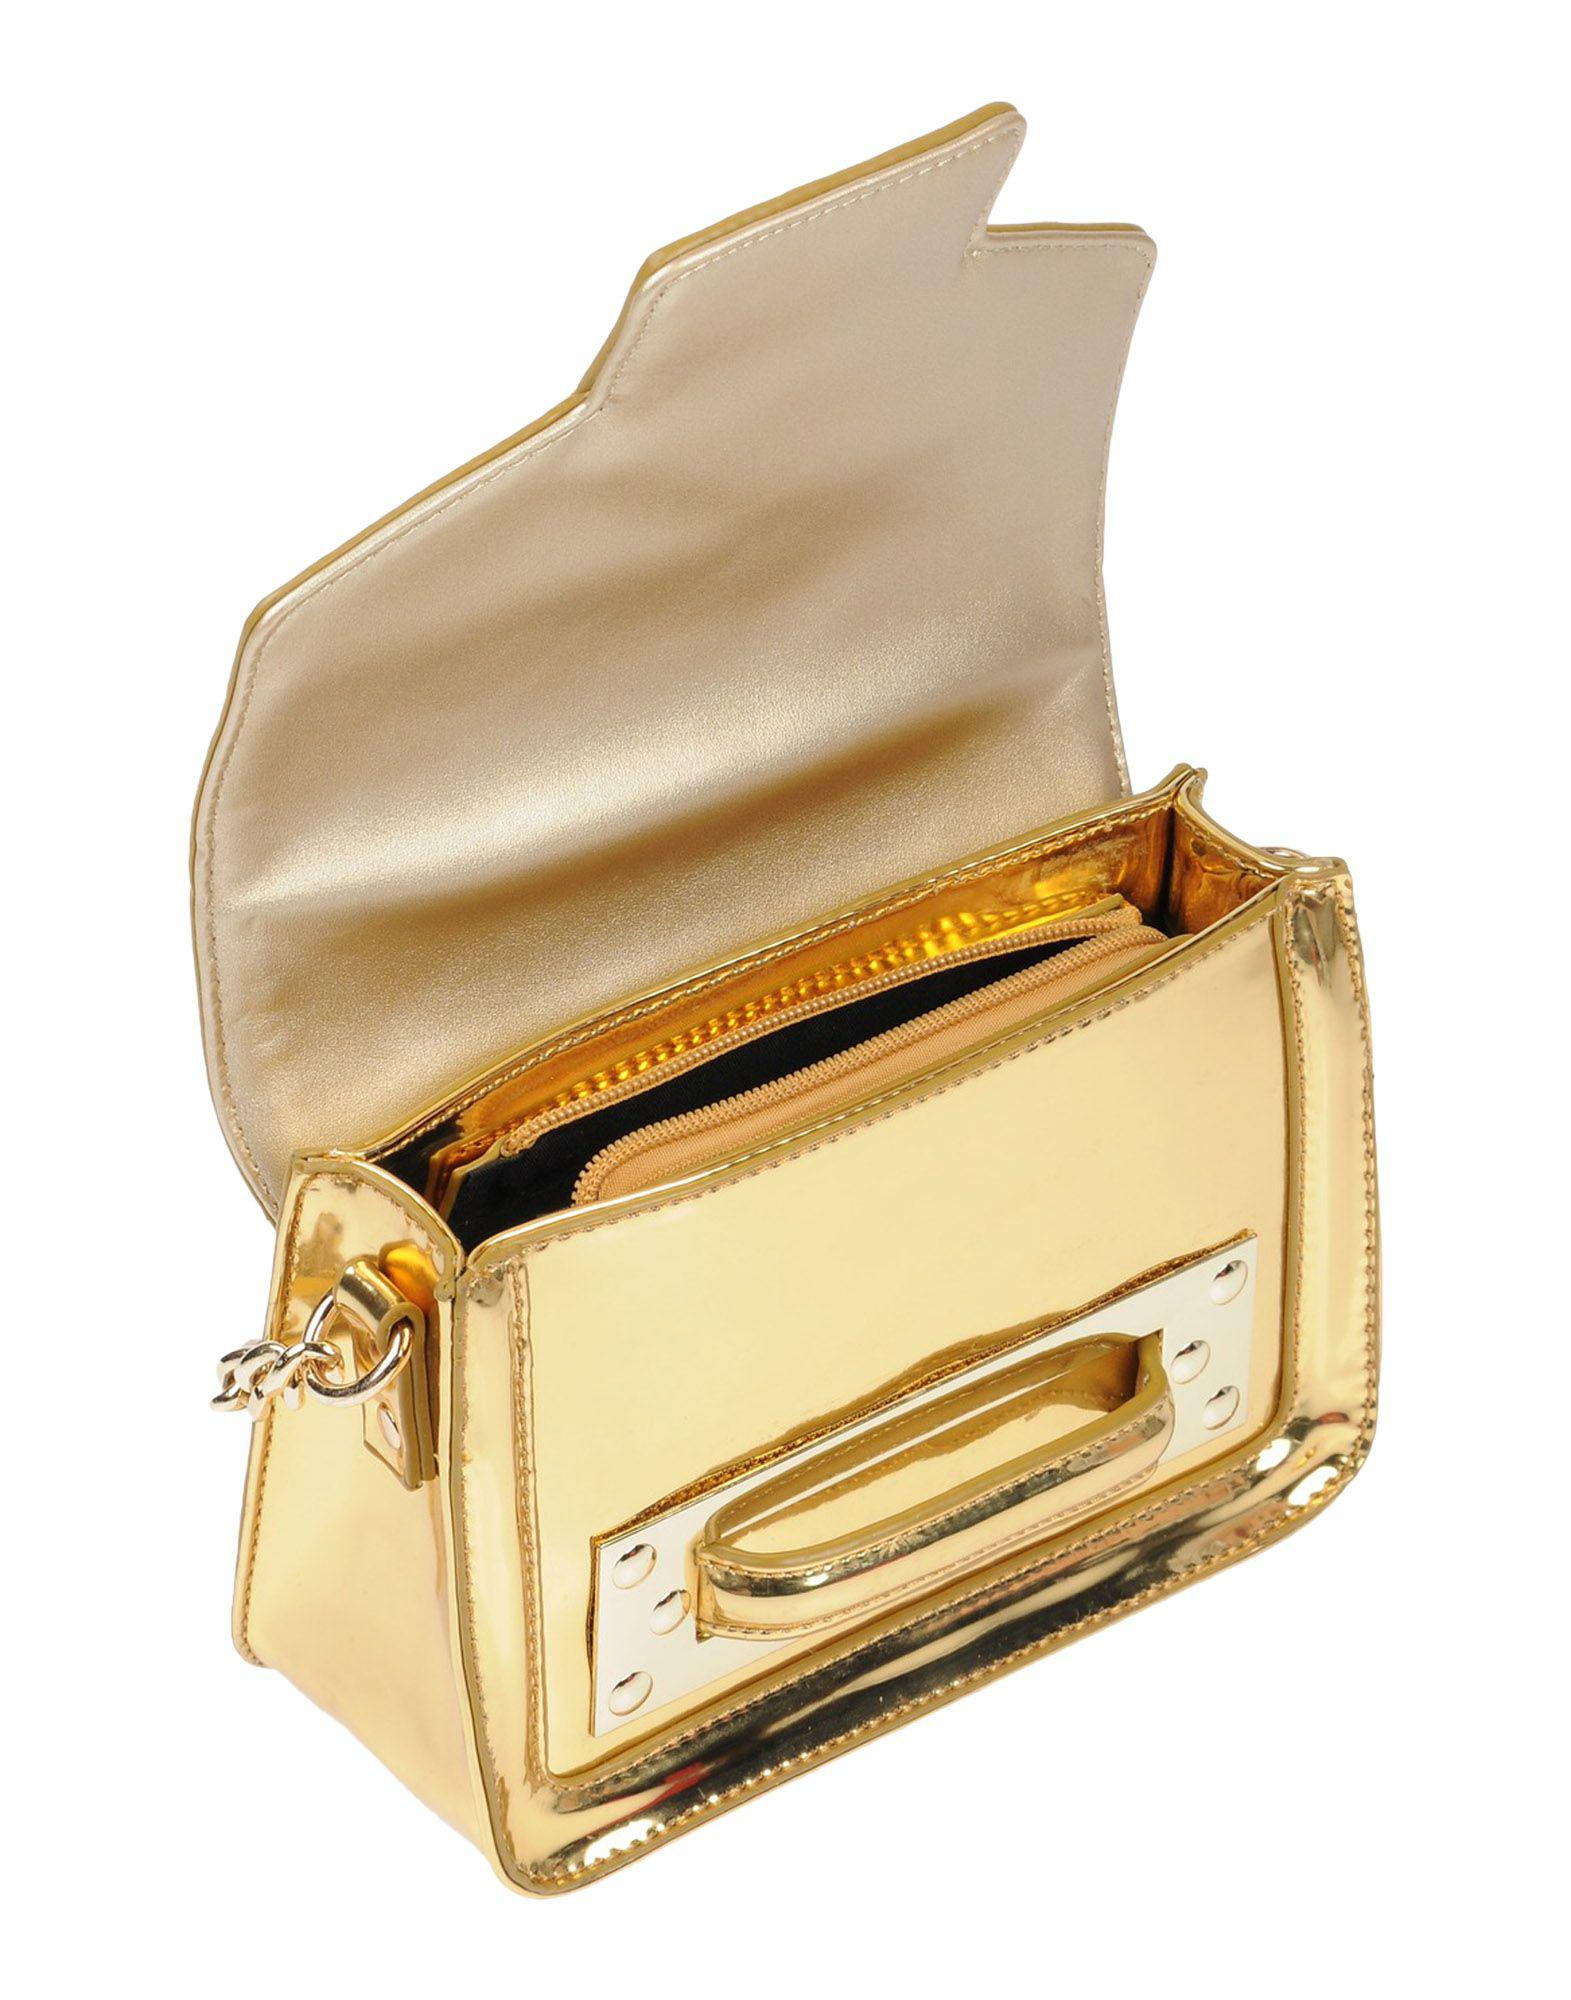 Relish Cross-body Bag in Gold (Metallic)